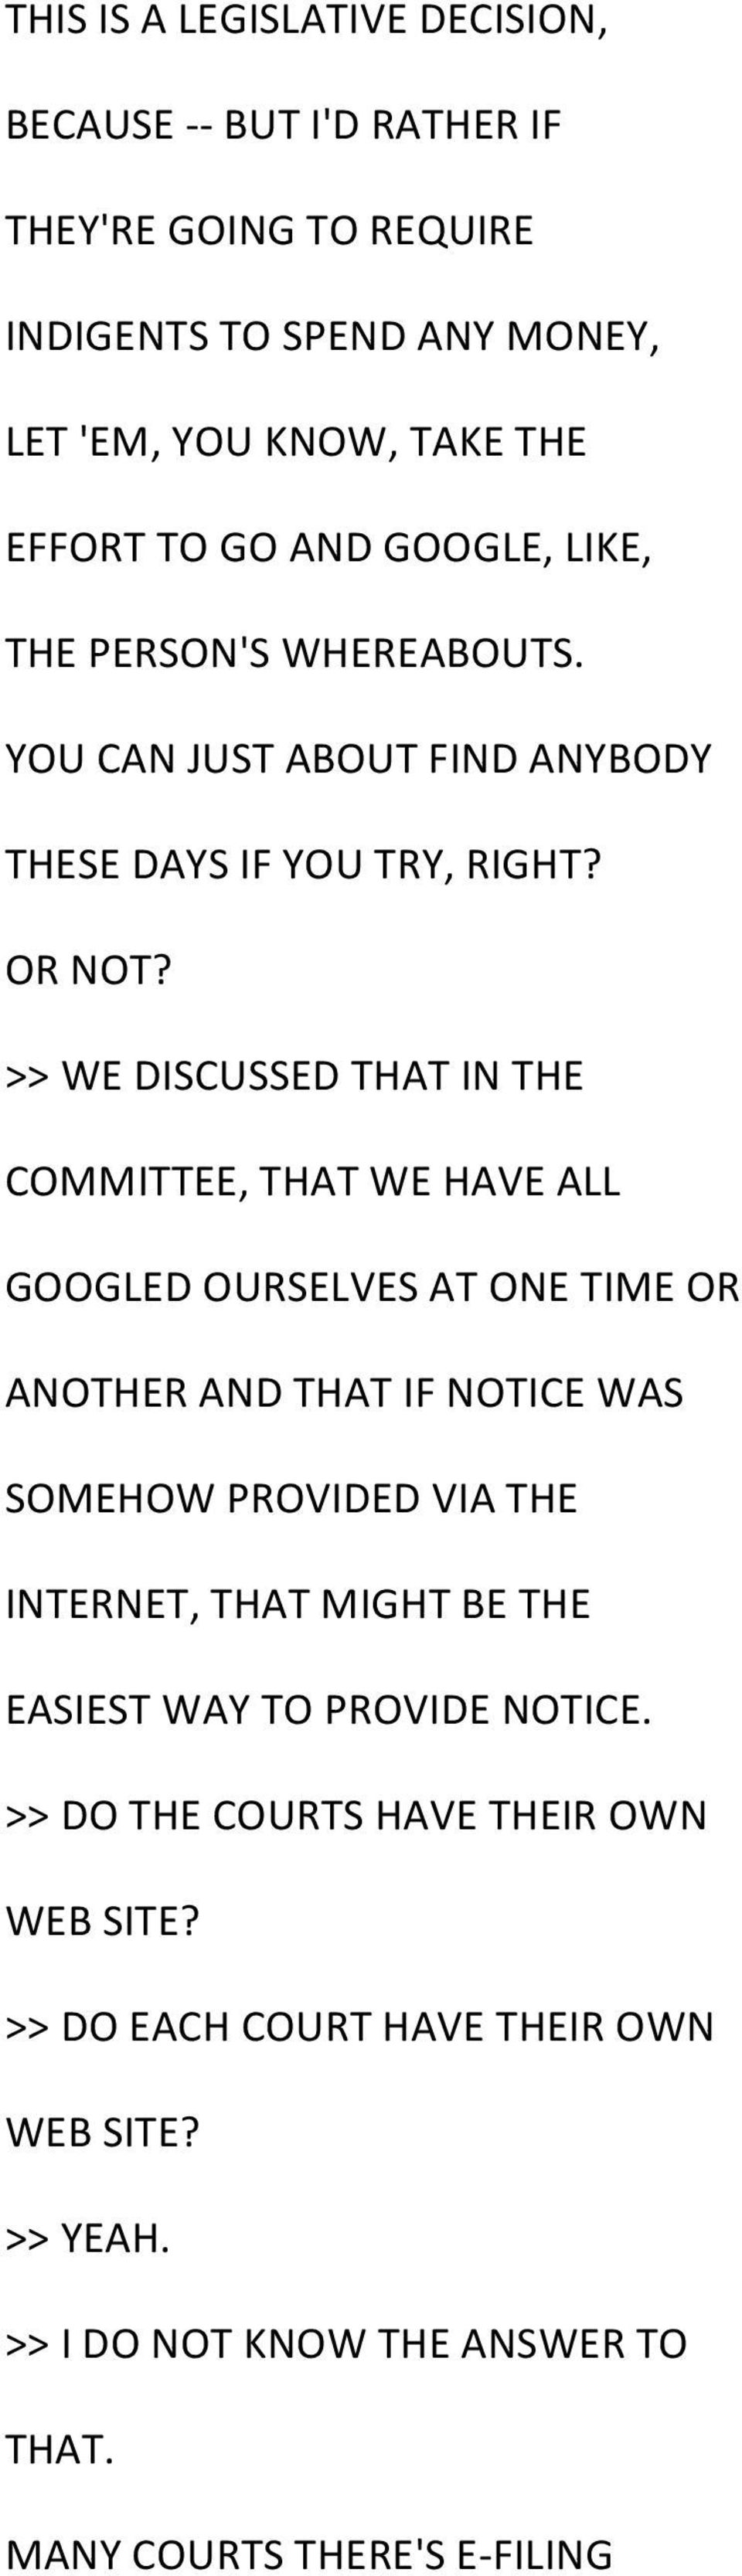 >> WE DISCUSSED THAT IN THE COMMITTEE, THAT WE HAVE ALL GOOGLED OURSELVES AT ONE TIME OR ANOTHER AND THAT IF NOTICE WAS SOMEHOW PROVIDED VIA THE INTERNET,